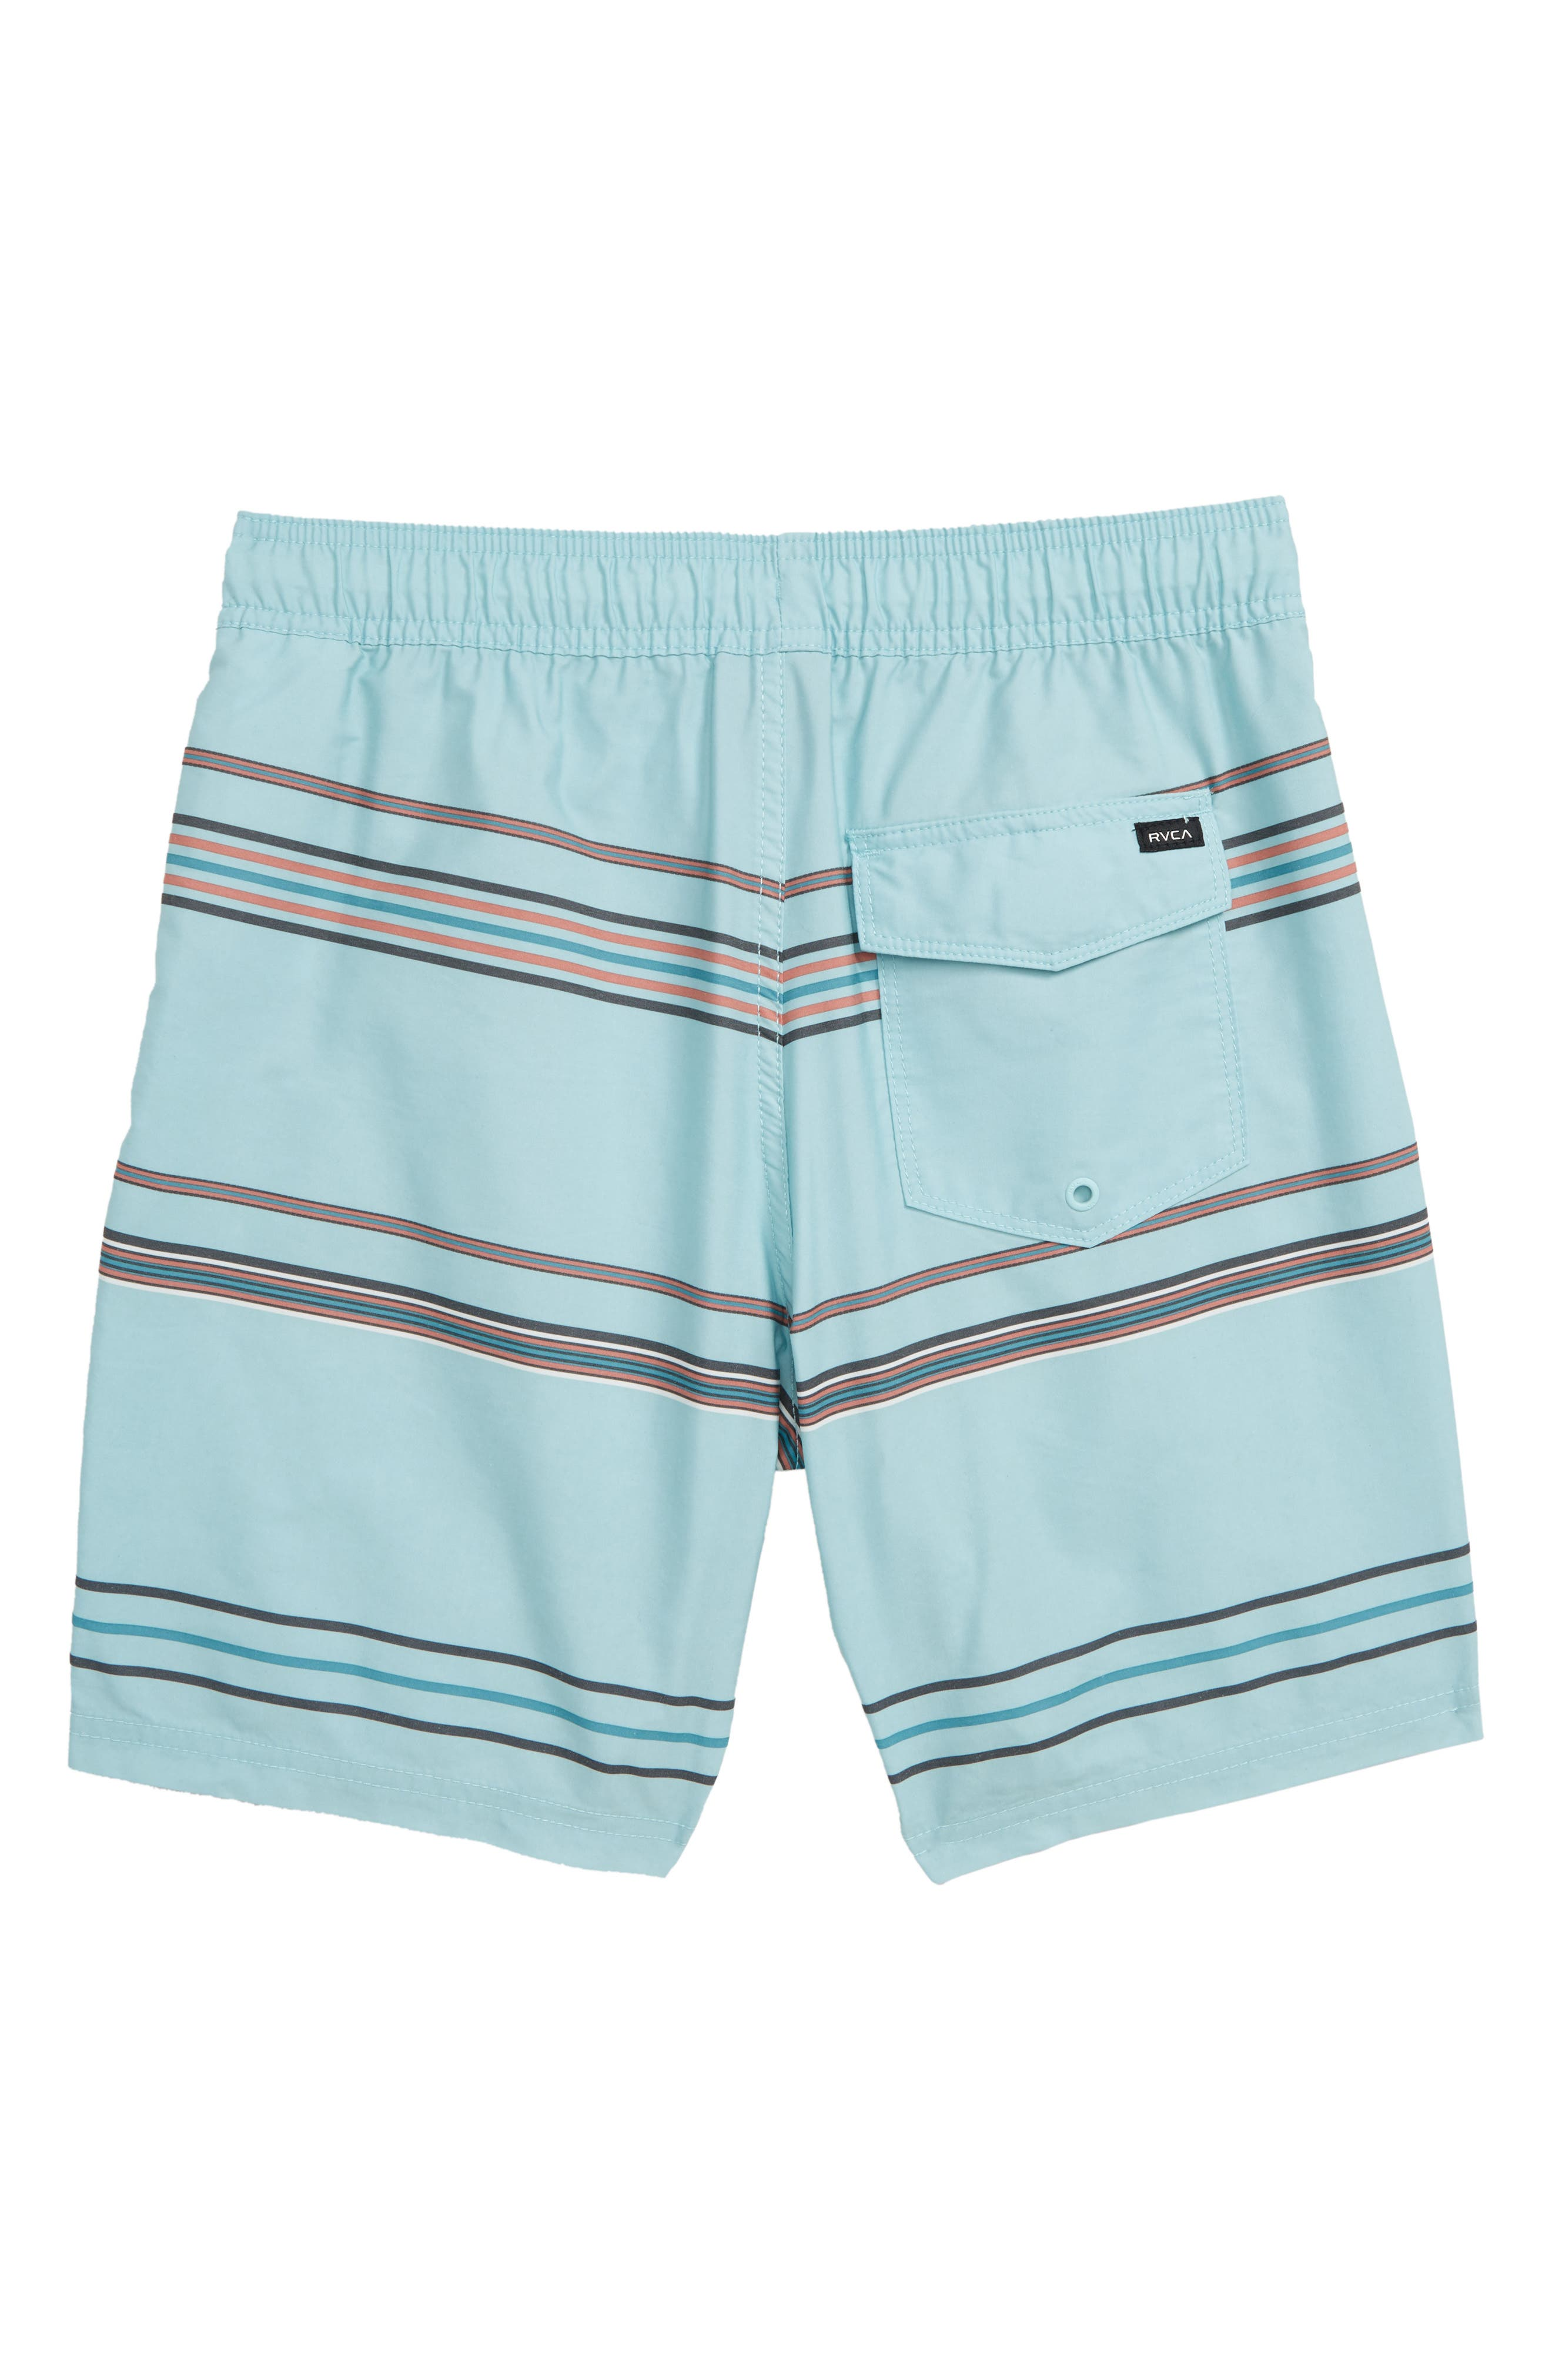 RVCA,                             Shattered Board Shorts,                             Alternate thumbnail 2, color,                             ETHER BLUE